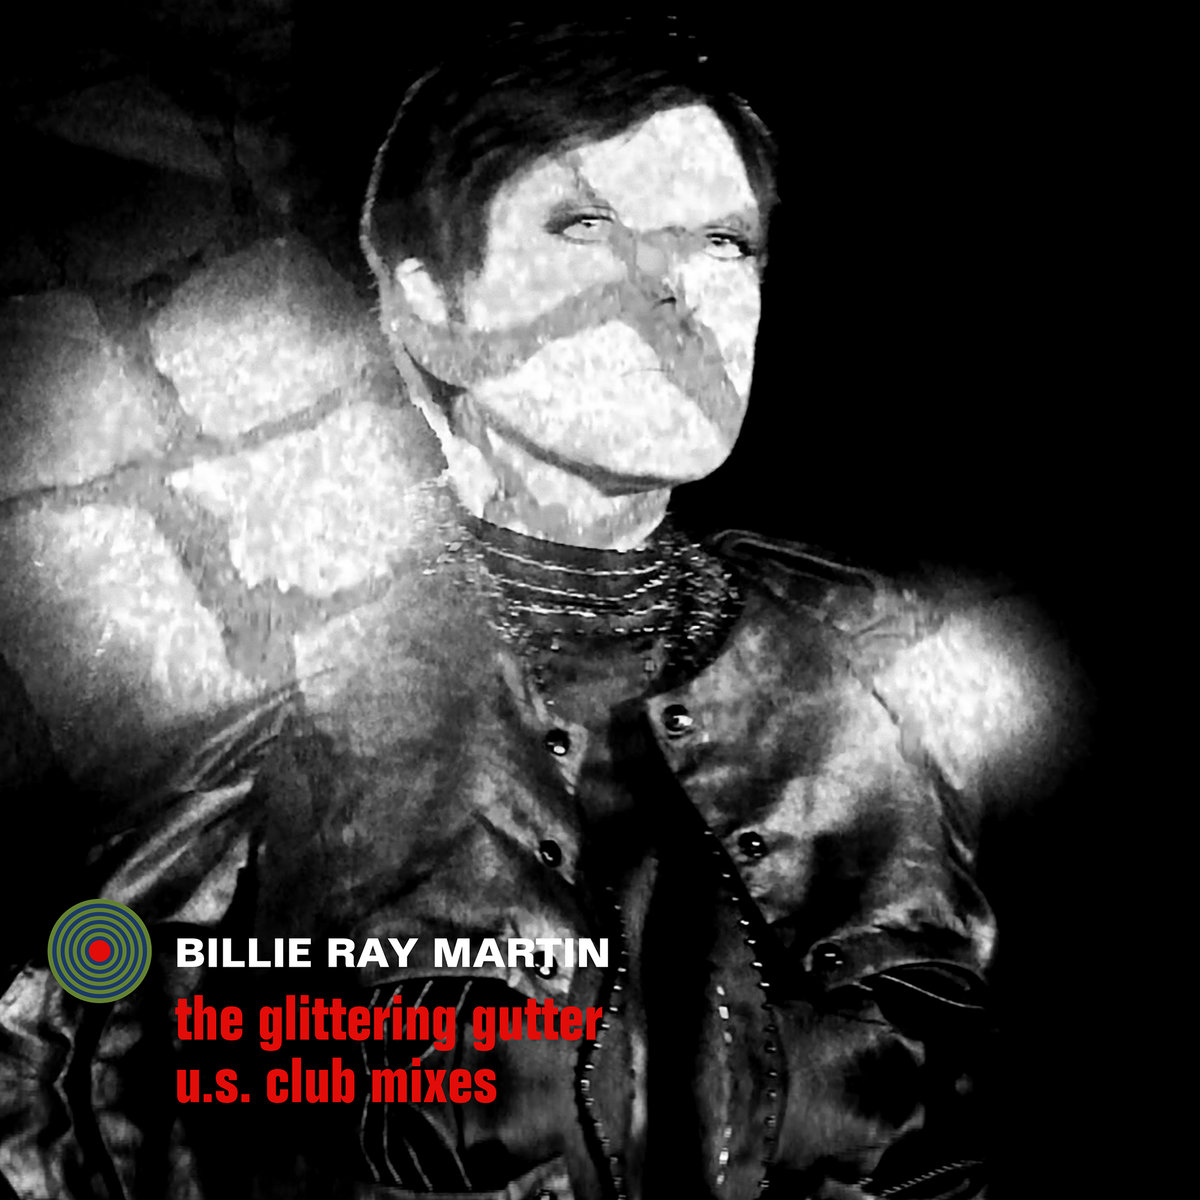 Billie Ray Martin - The Glittering Gutter: U.S. Club Mixed